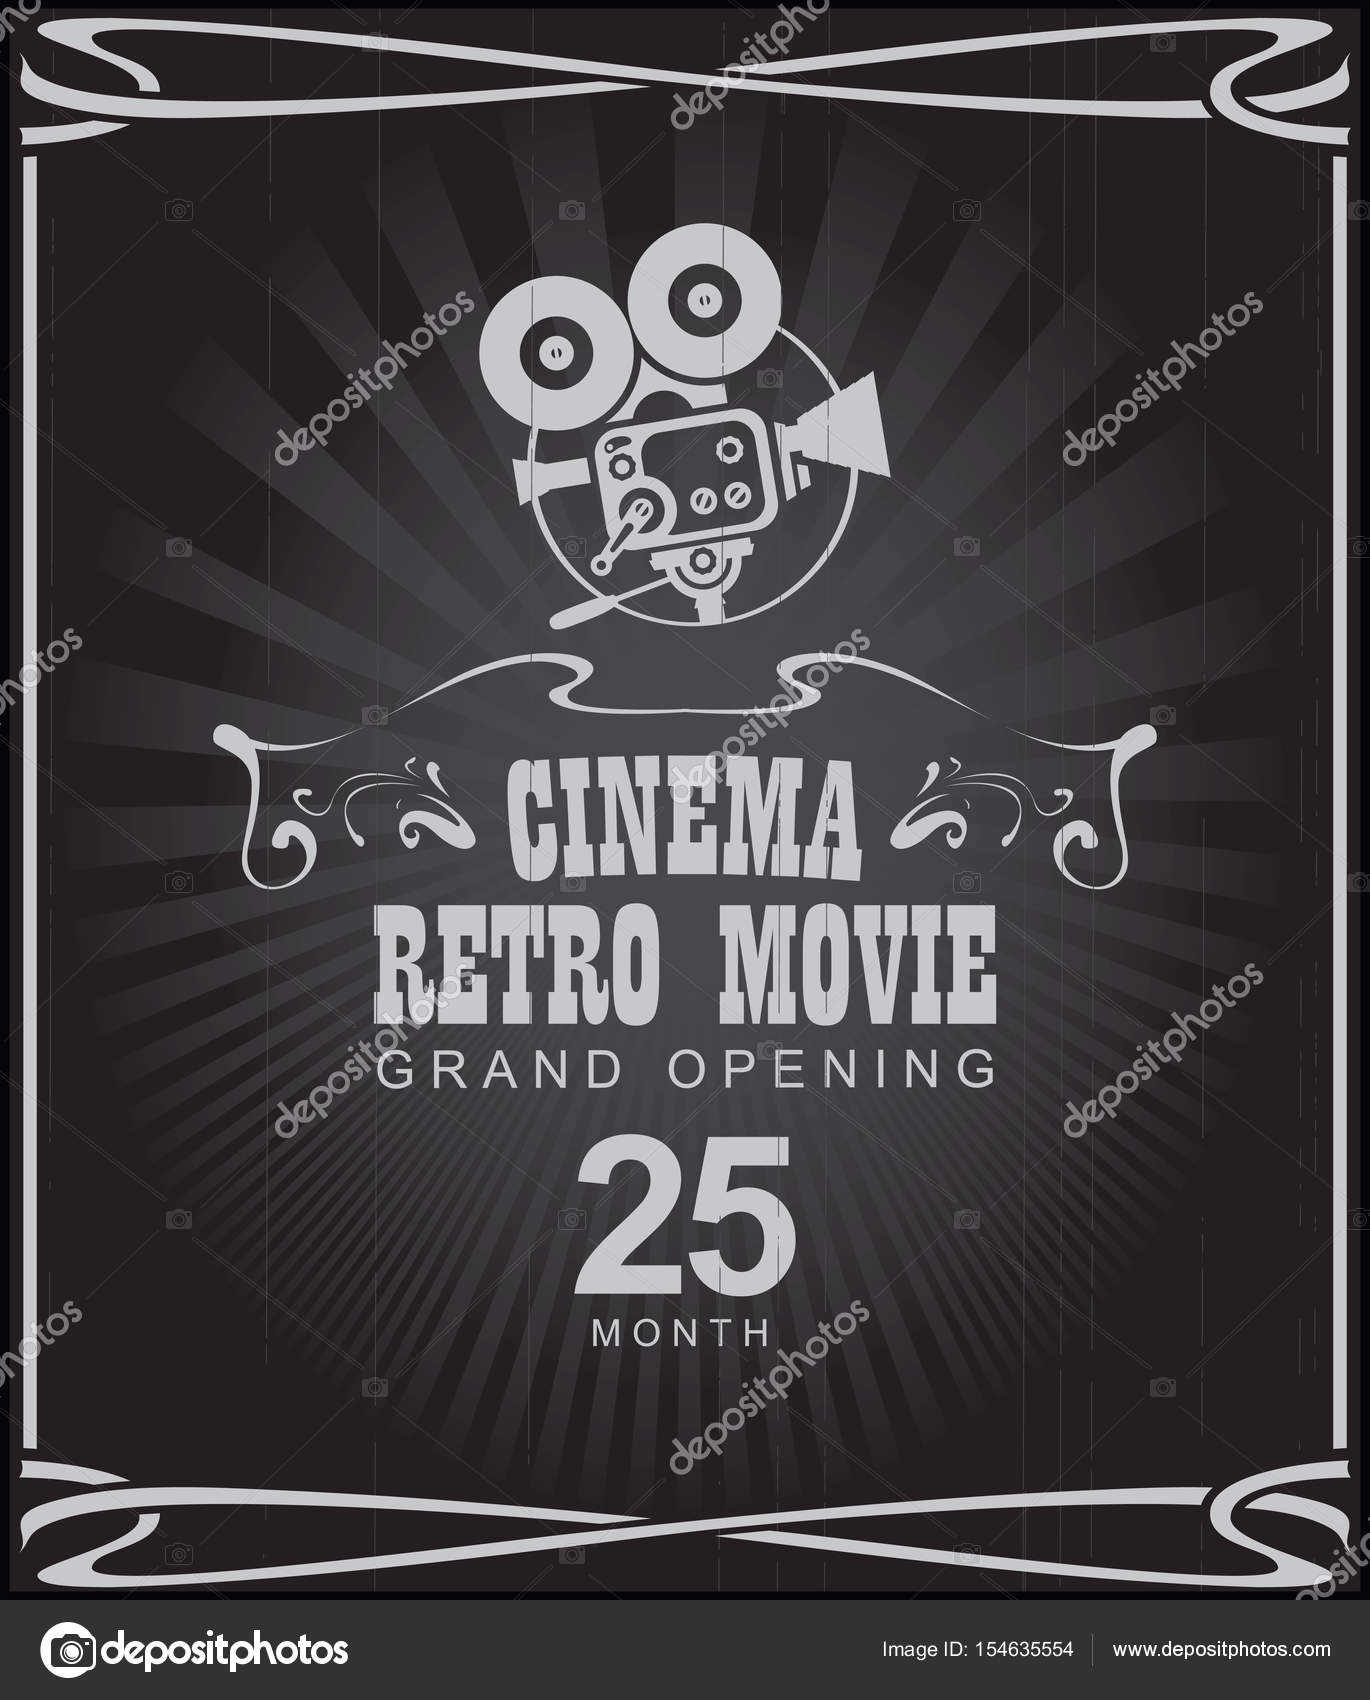 affiche cinema film r tro avec appareil photo ancien image vectorielle paseven 154635554. Black Bedroom Furniture Sets. Home Design Ideas